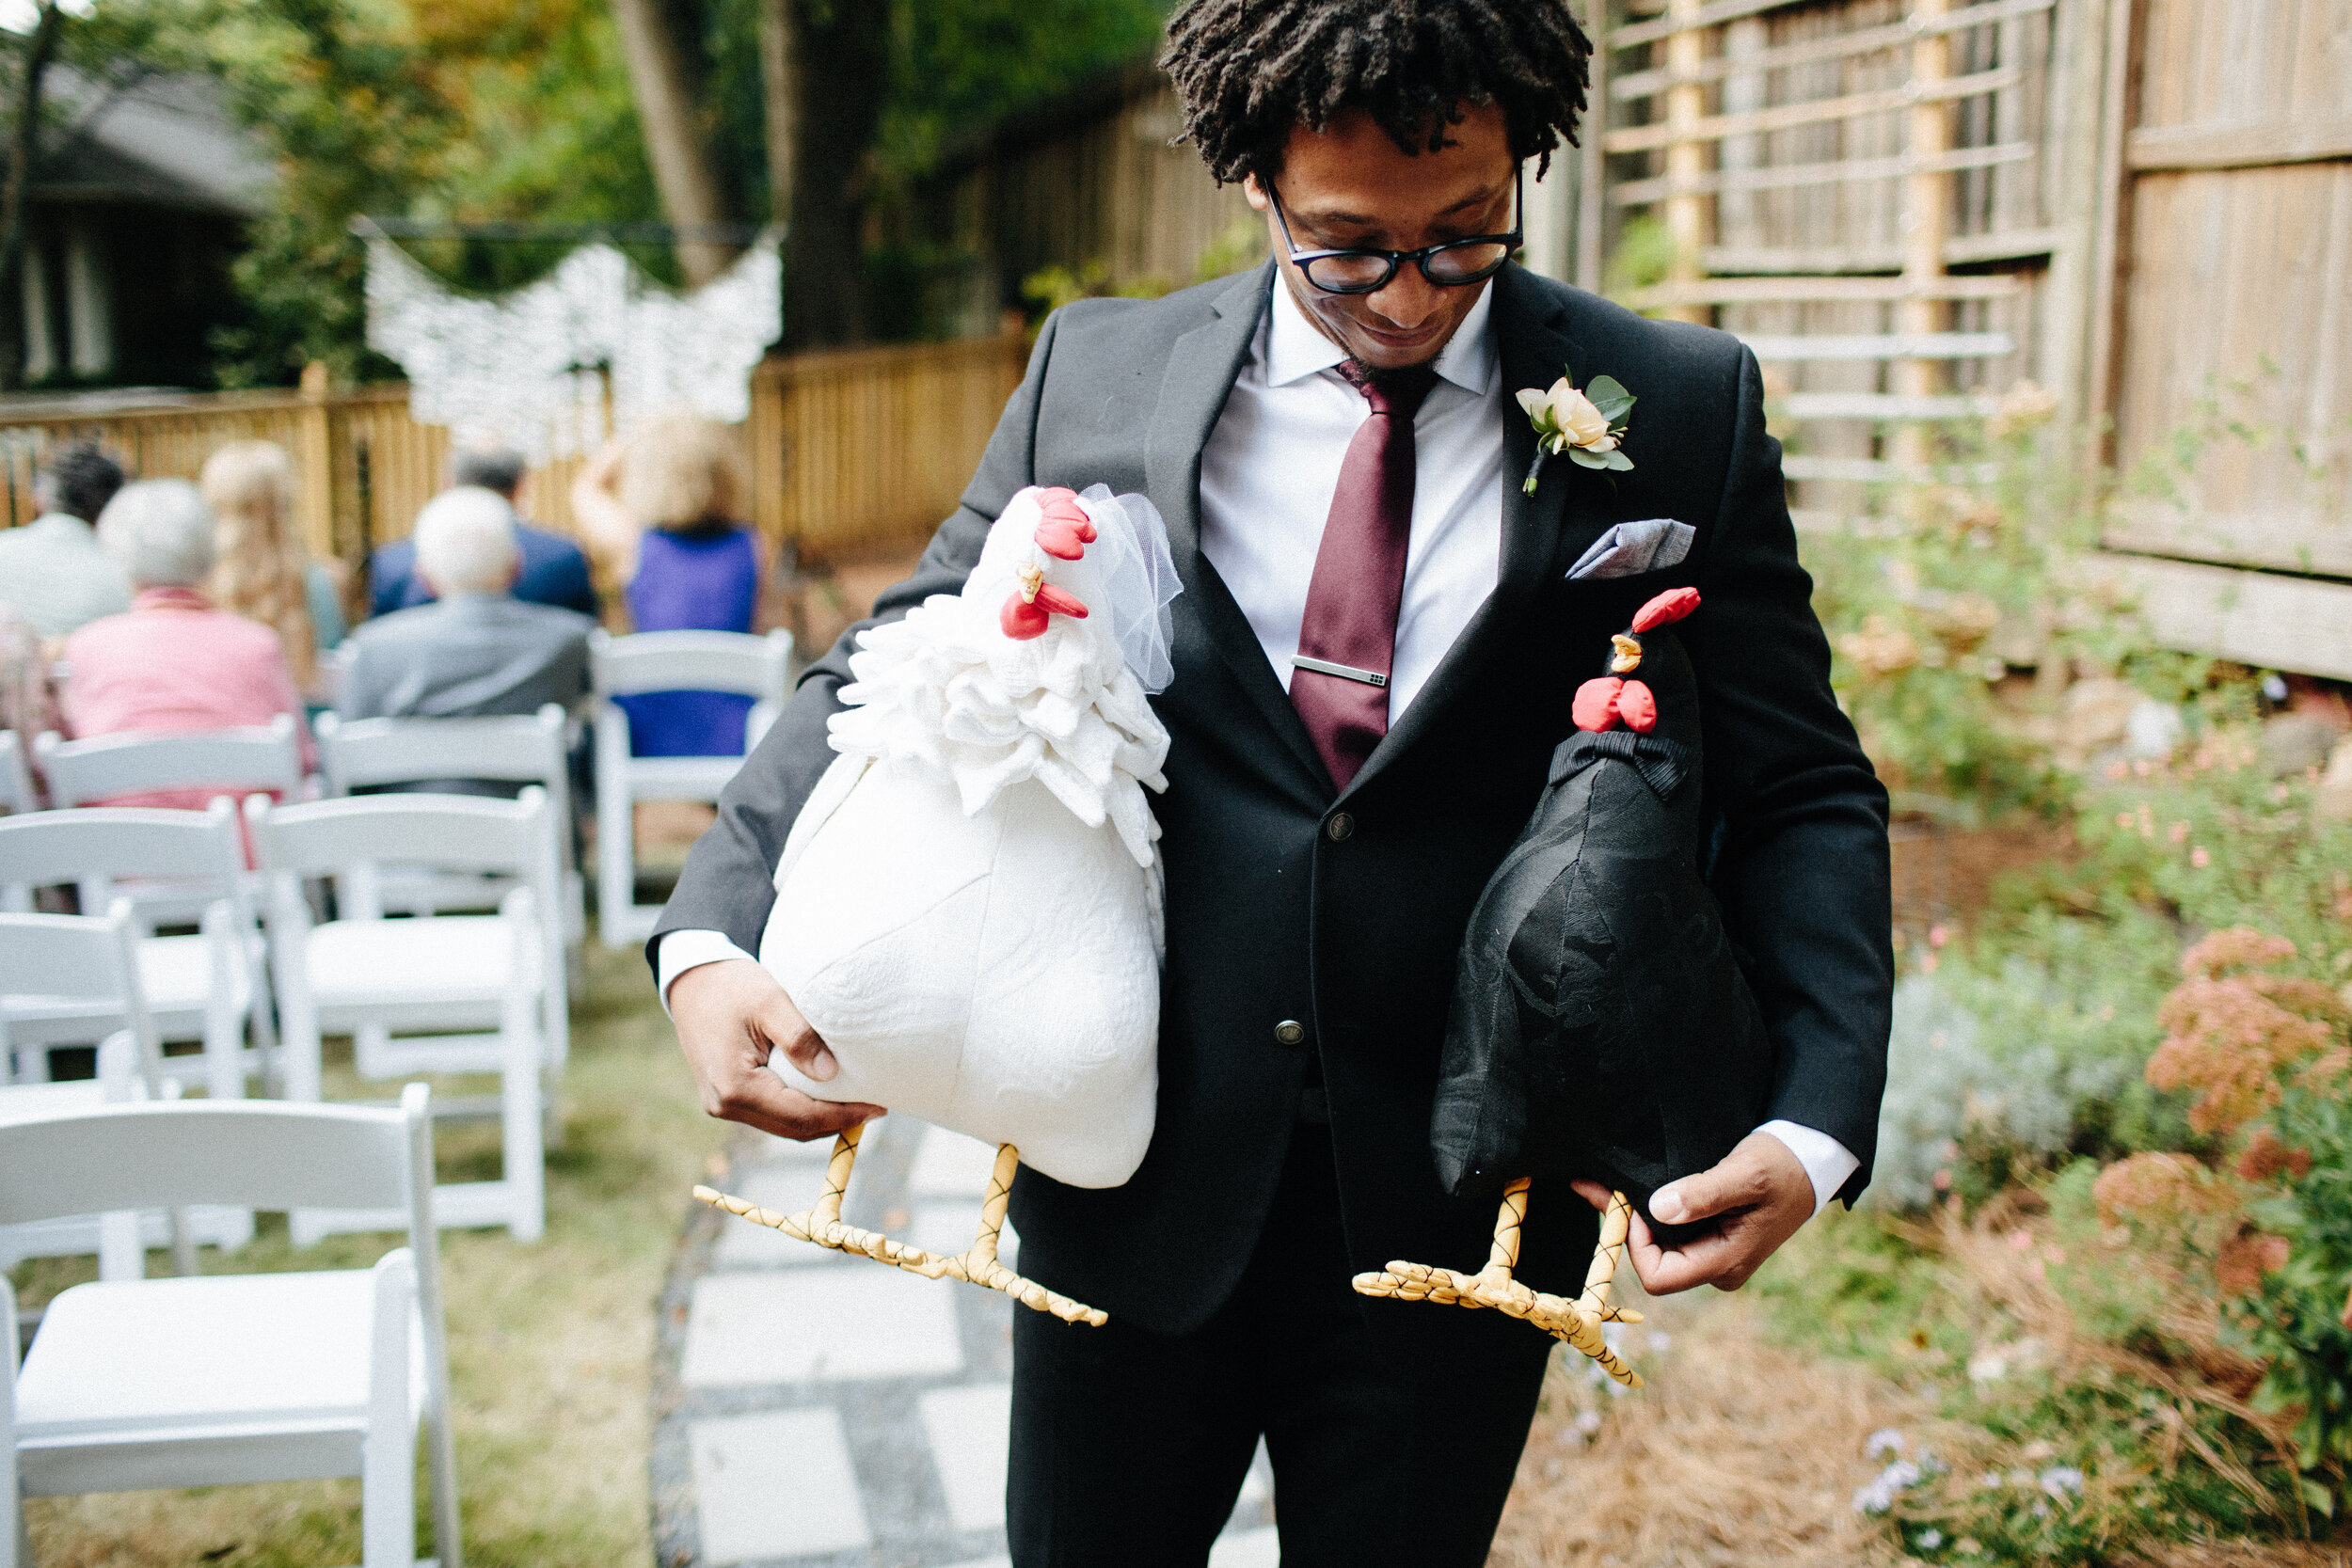 backyard_sun_in_my_belly_wedding_diy_at_home_atlanta_inman_park_arty_photographer_1428.jpg